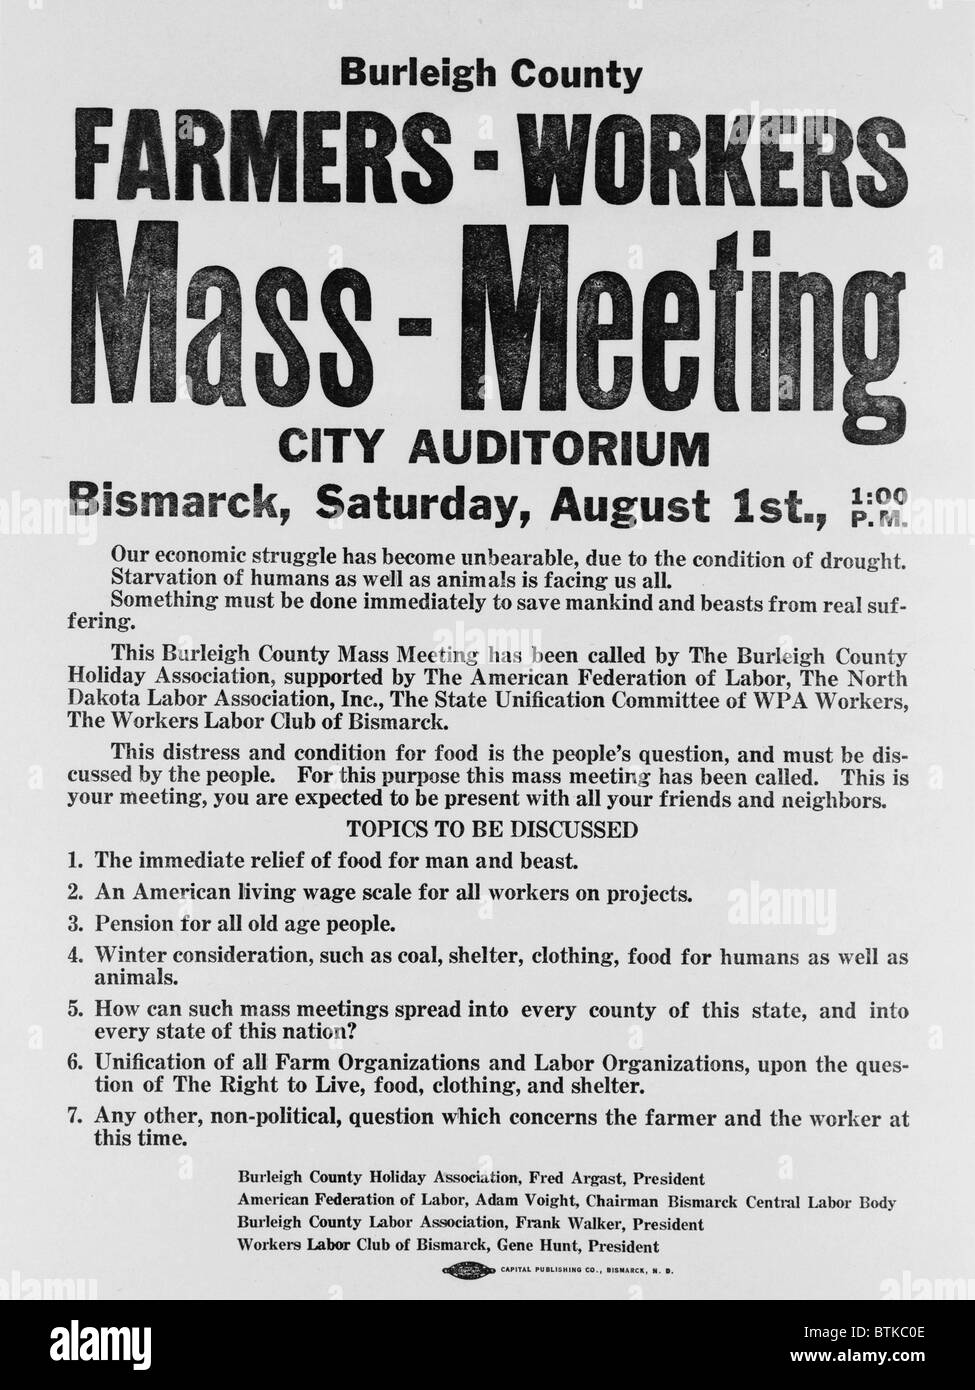 Announcement for a 1937 Farmers Mass meeting sponsored by organized labor, listed demands for relief, wages and - Stock Image